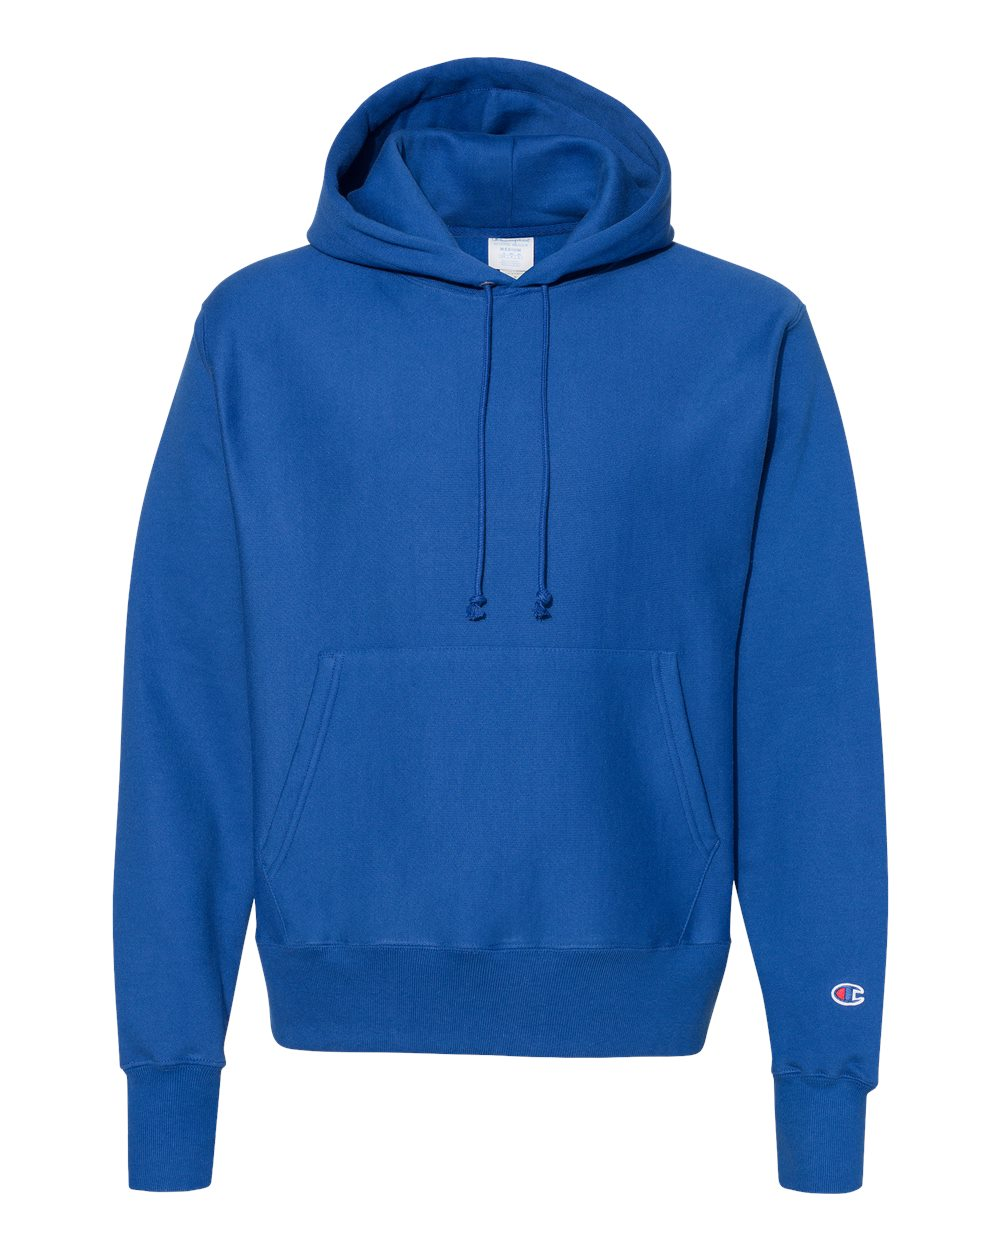 Champion-Mens-Reverse-Weave-Hooded-Pullover-Sweatshirt-S101-up-to-3XL thumbnail 6